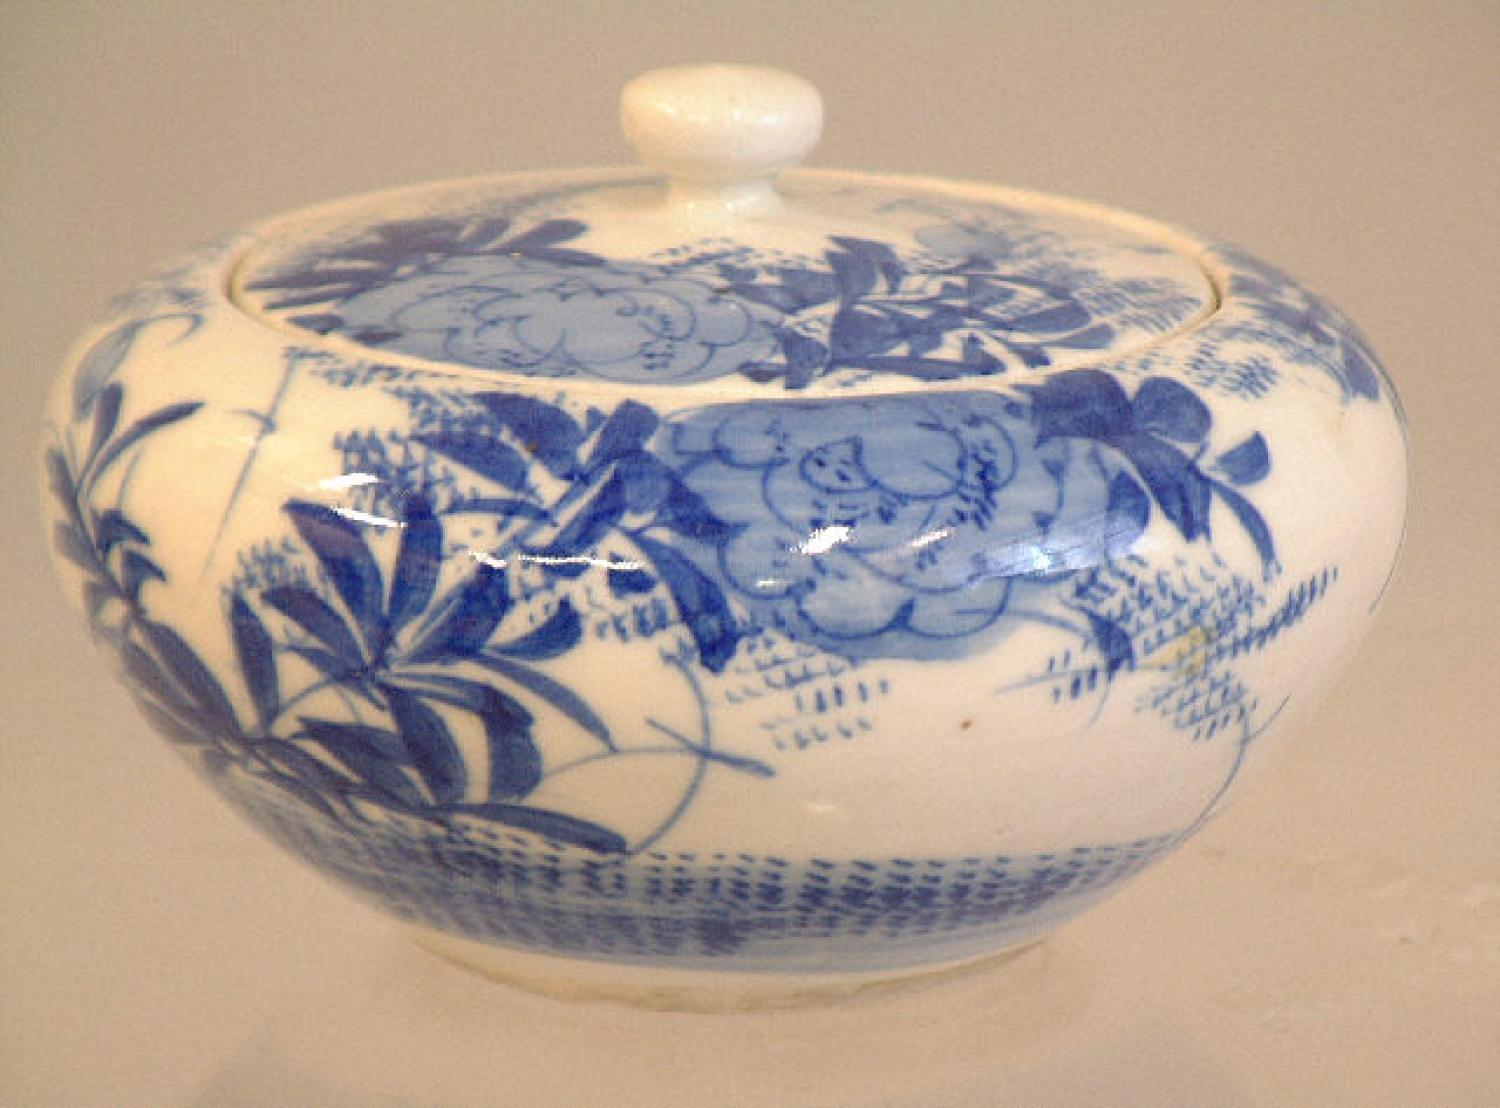 Japanese Arita Ware covered jar c1900